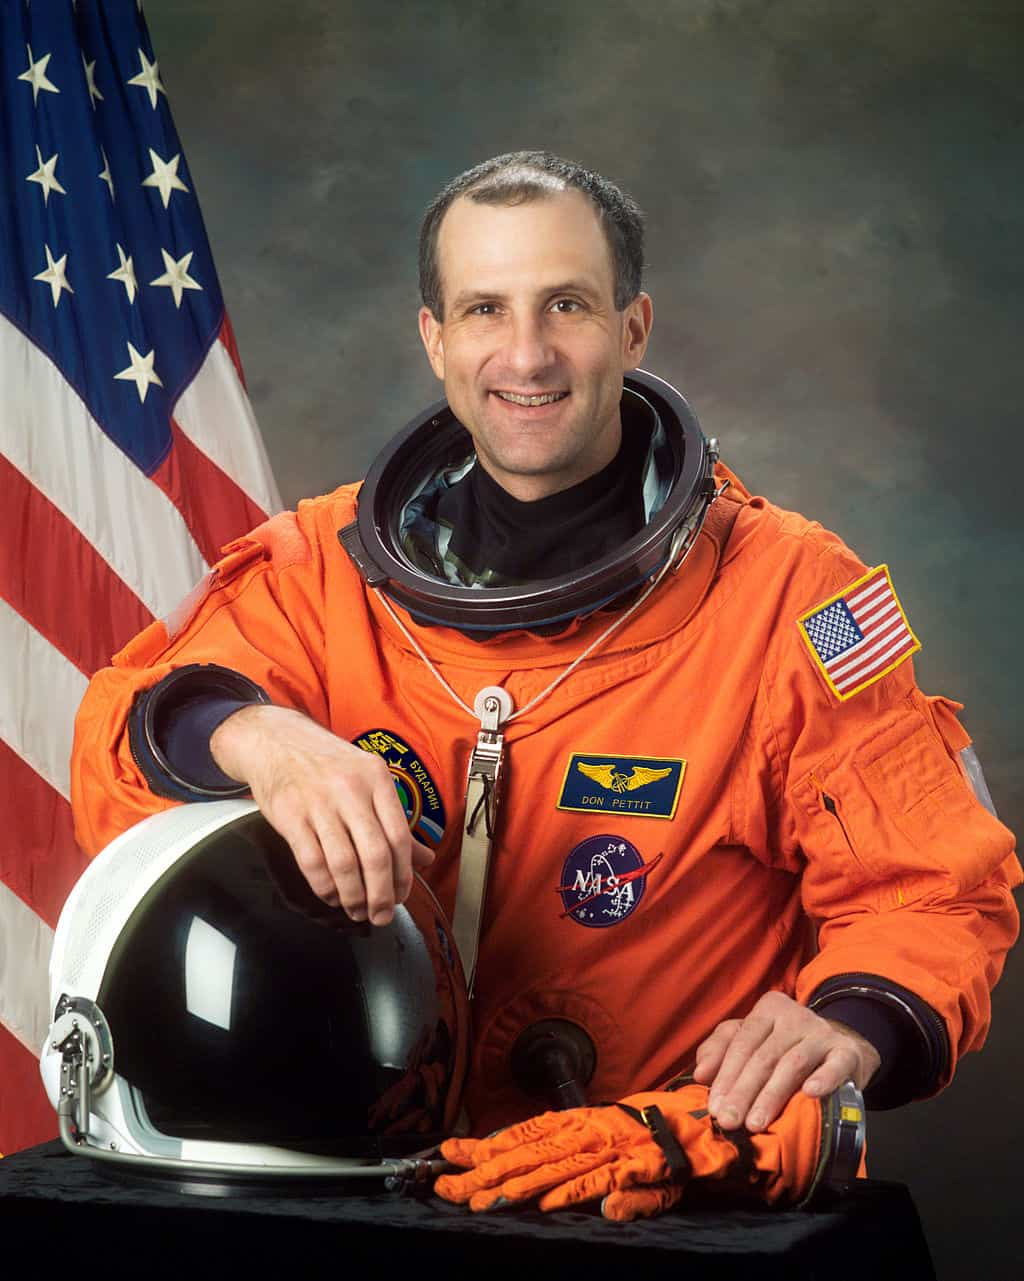 Don Pettit: NASA Astronaut, Engineer, Scientist and Explorer to speak at #WEM19